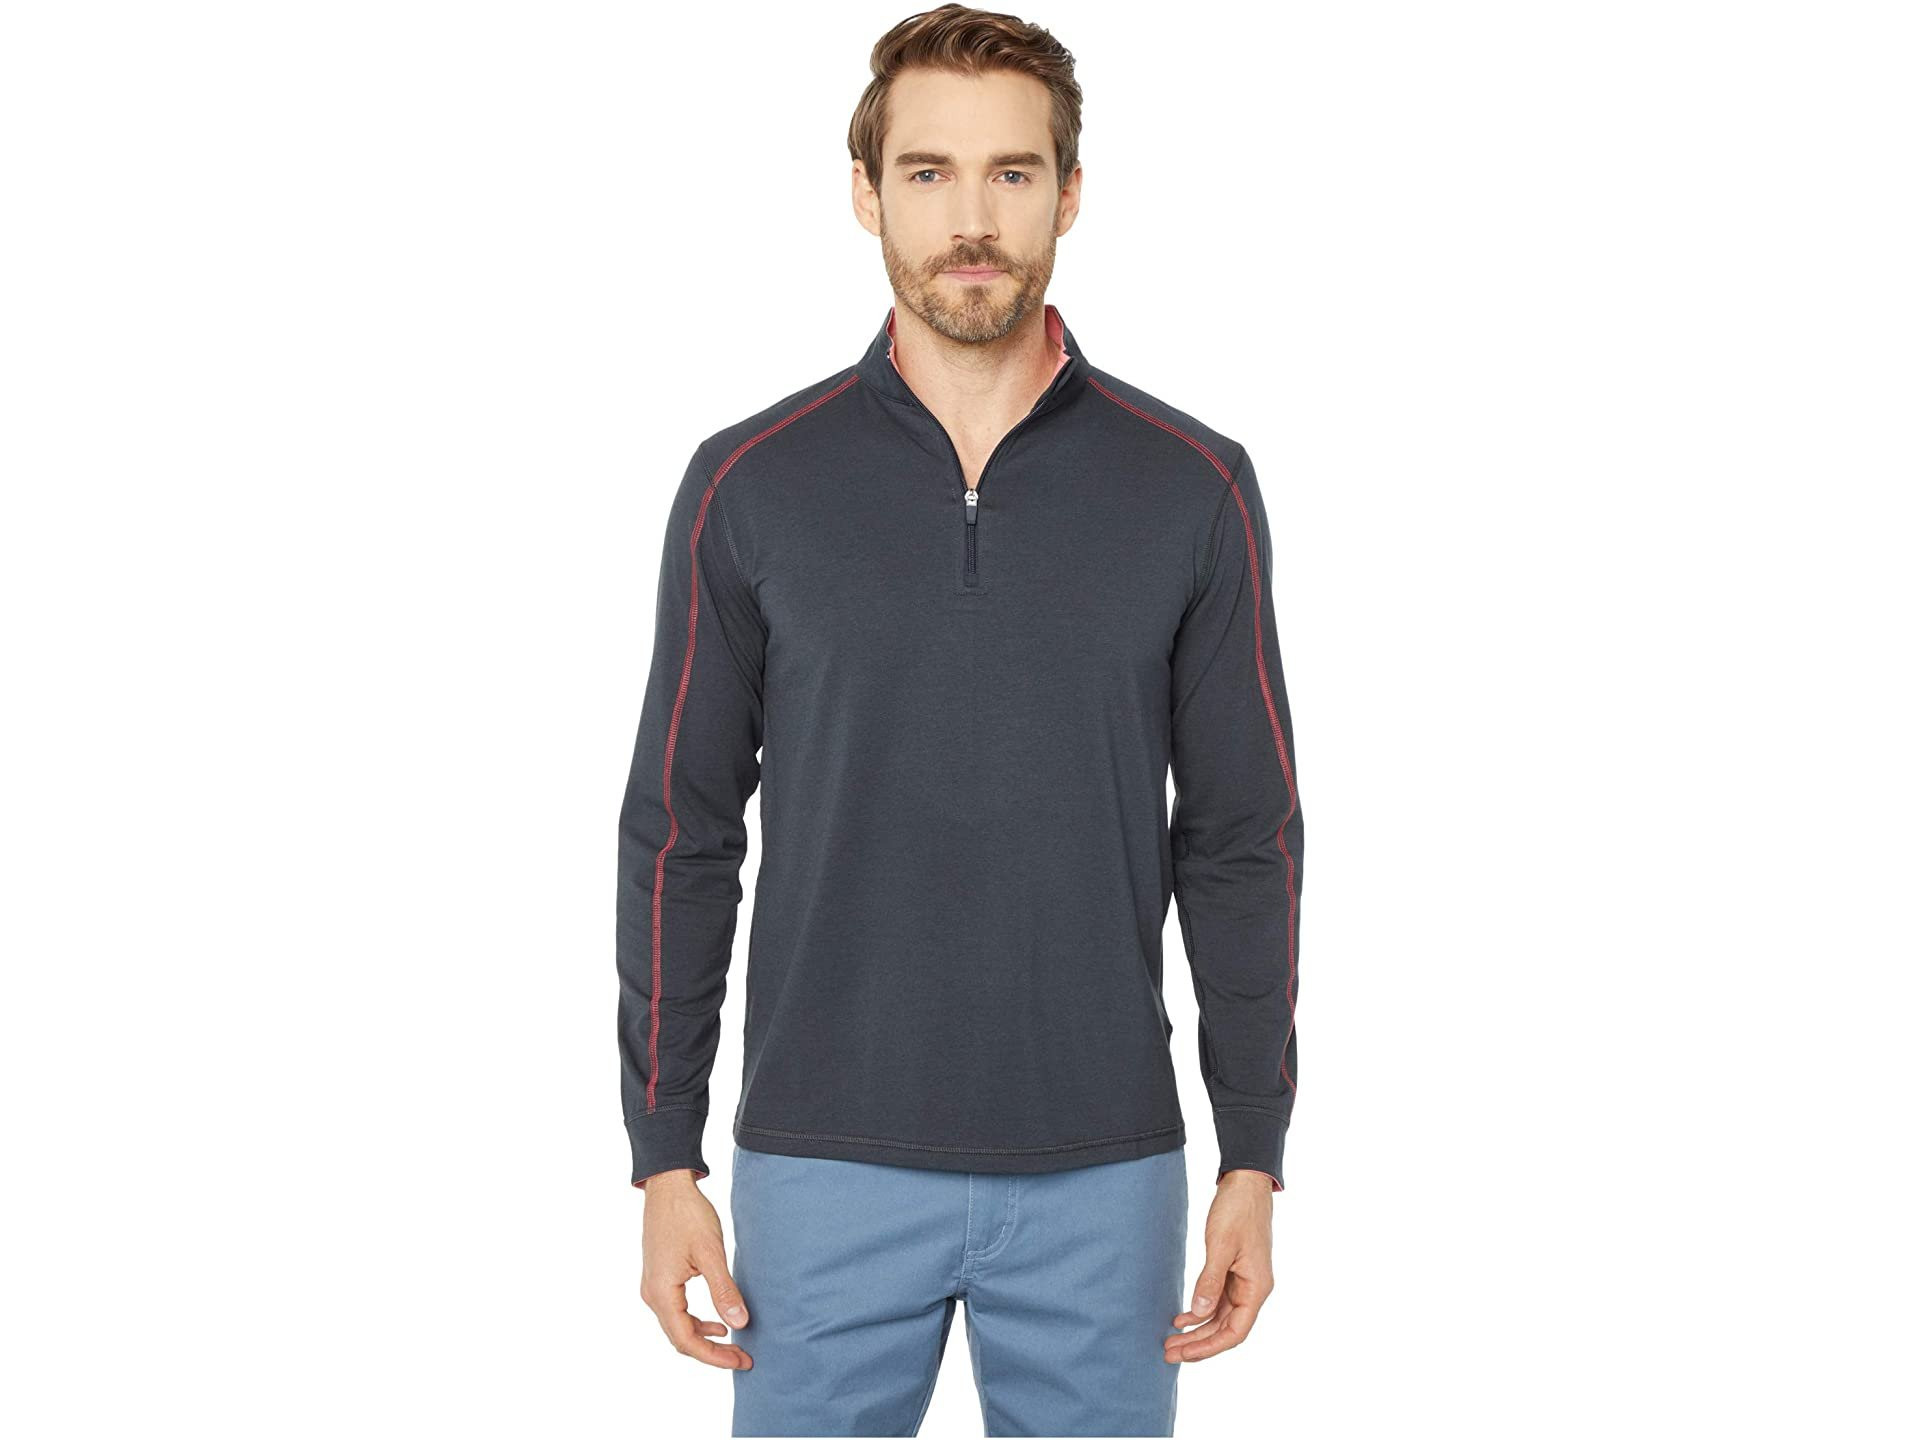 M's Carrollton 1/4 Zip in Red Coral Heather by Tasc